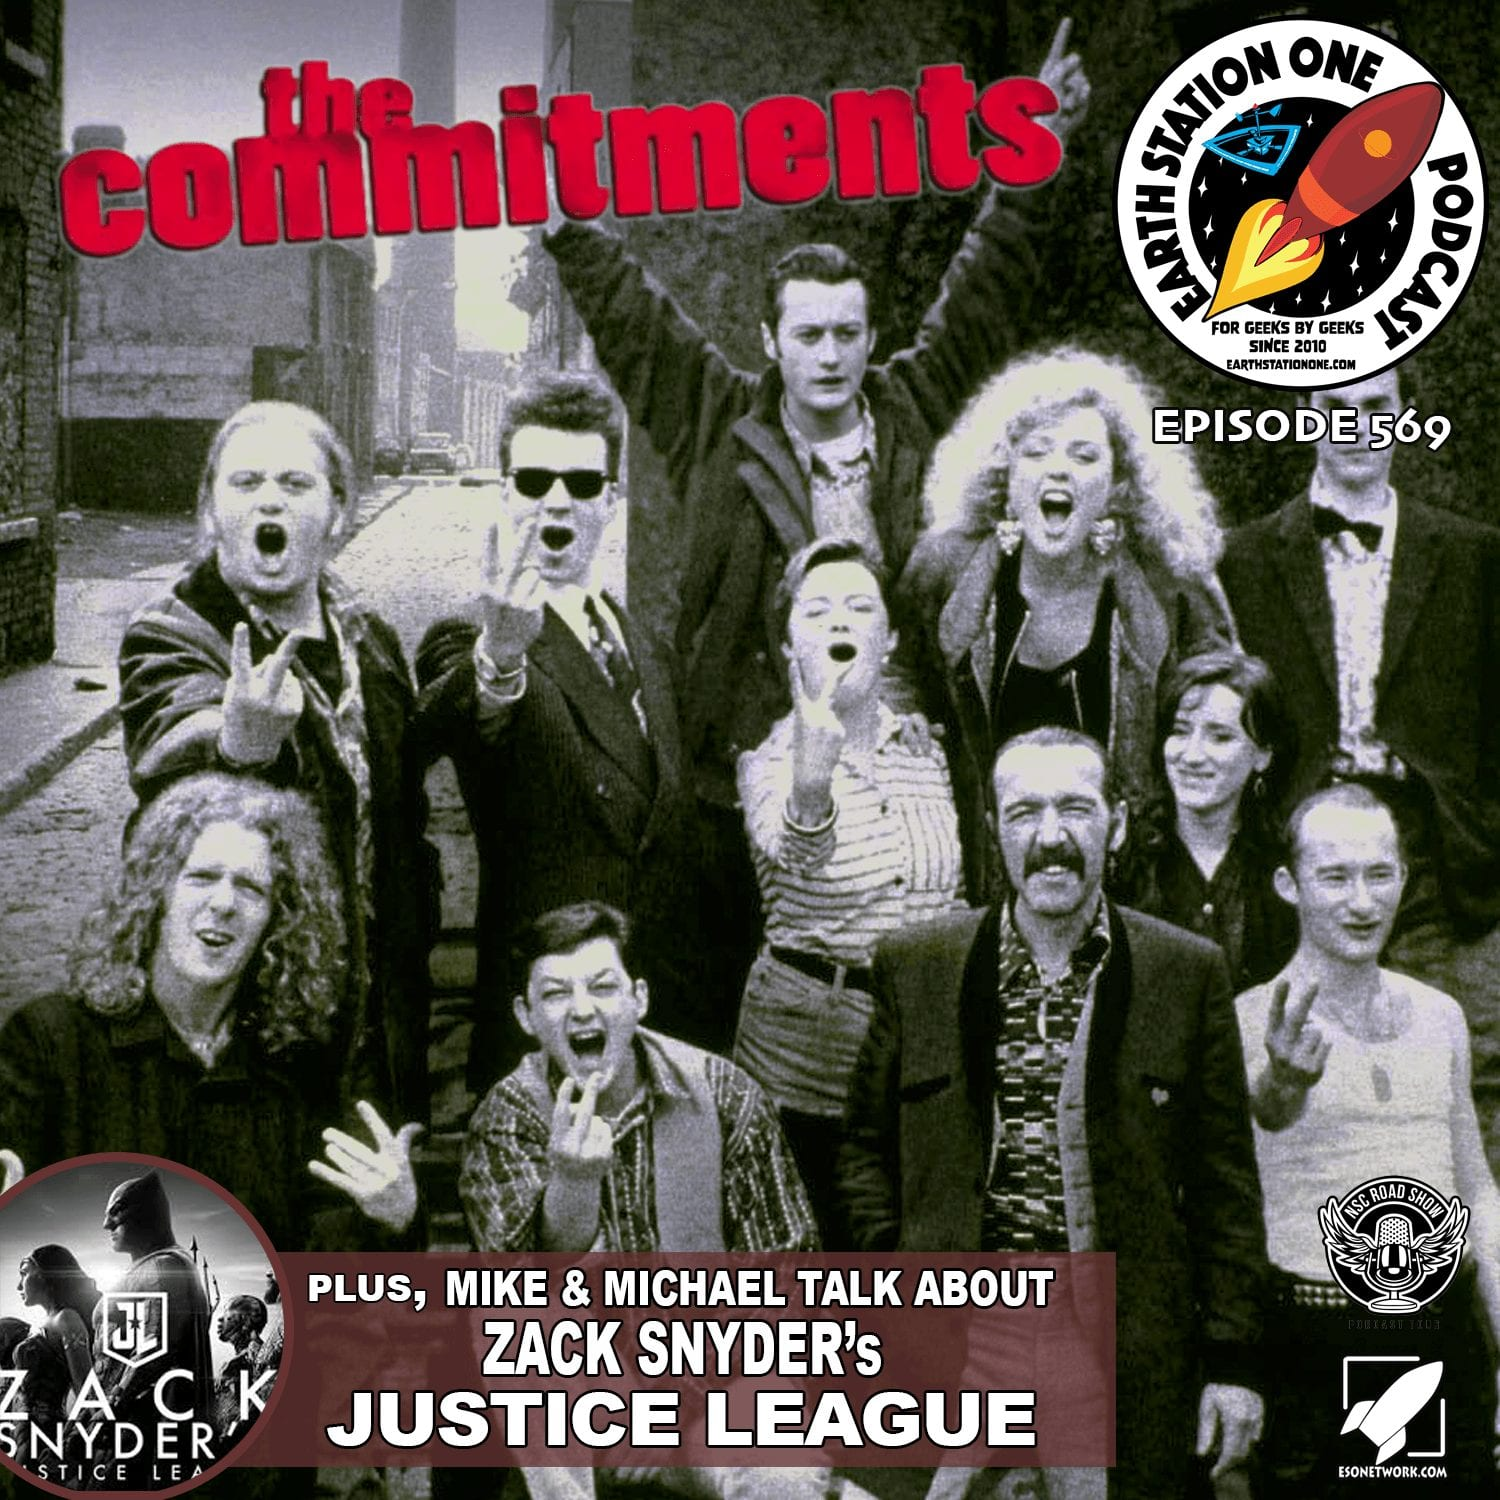 The Earth Station One Podcast - The 30th Anniversary of the Commitments